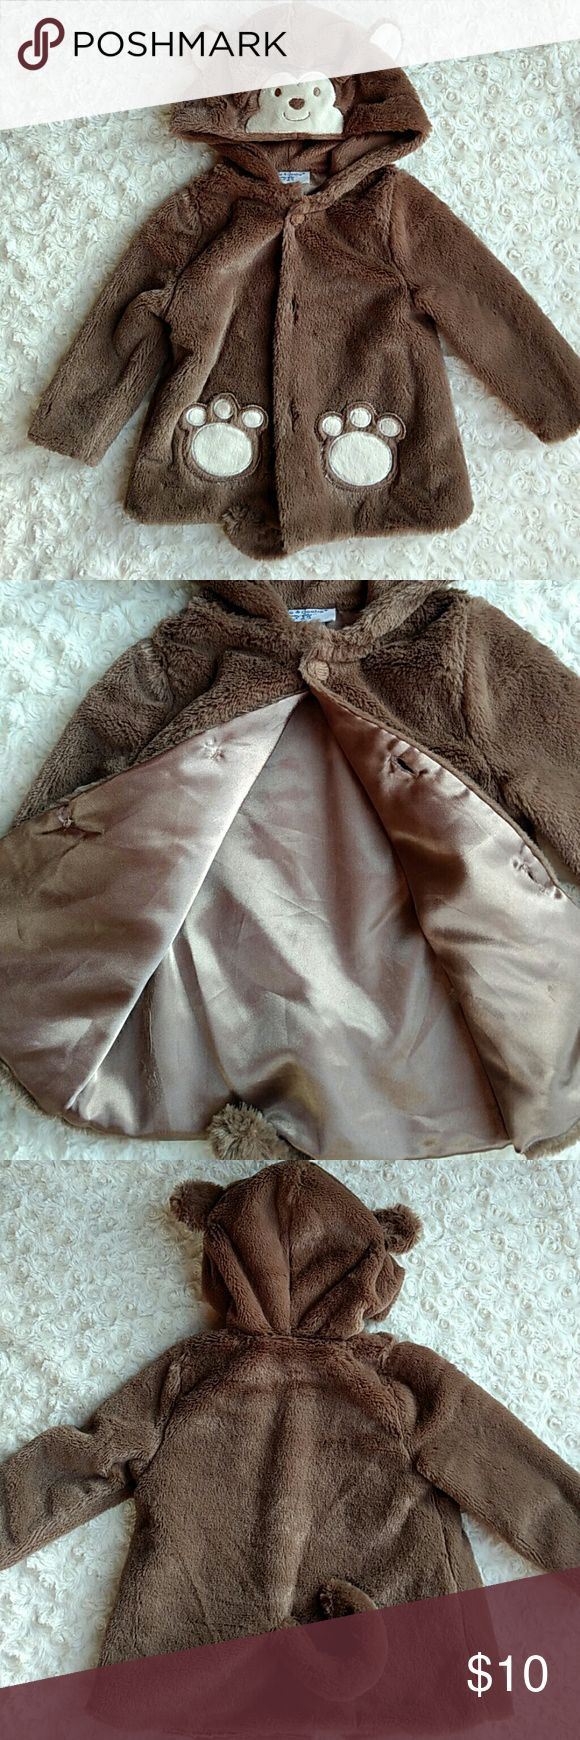 Adorable Monkey Jacket! Worn twice! Soft faux fur with ears and a cute little tail. Pockets are paw prints. Inside is fully lined. Kyle & Deena Jackets & Coats